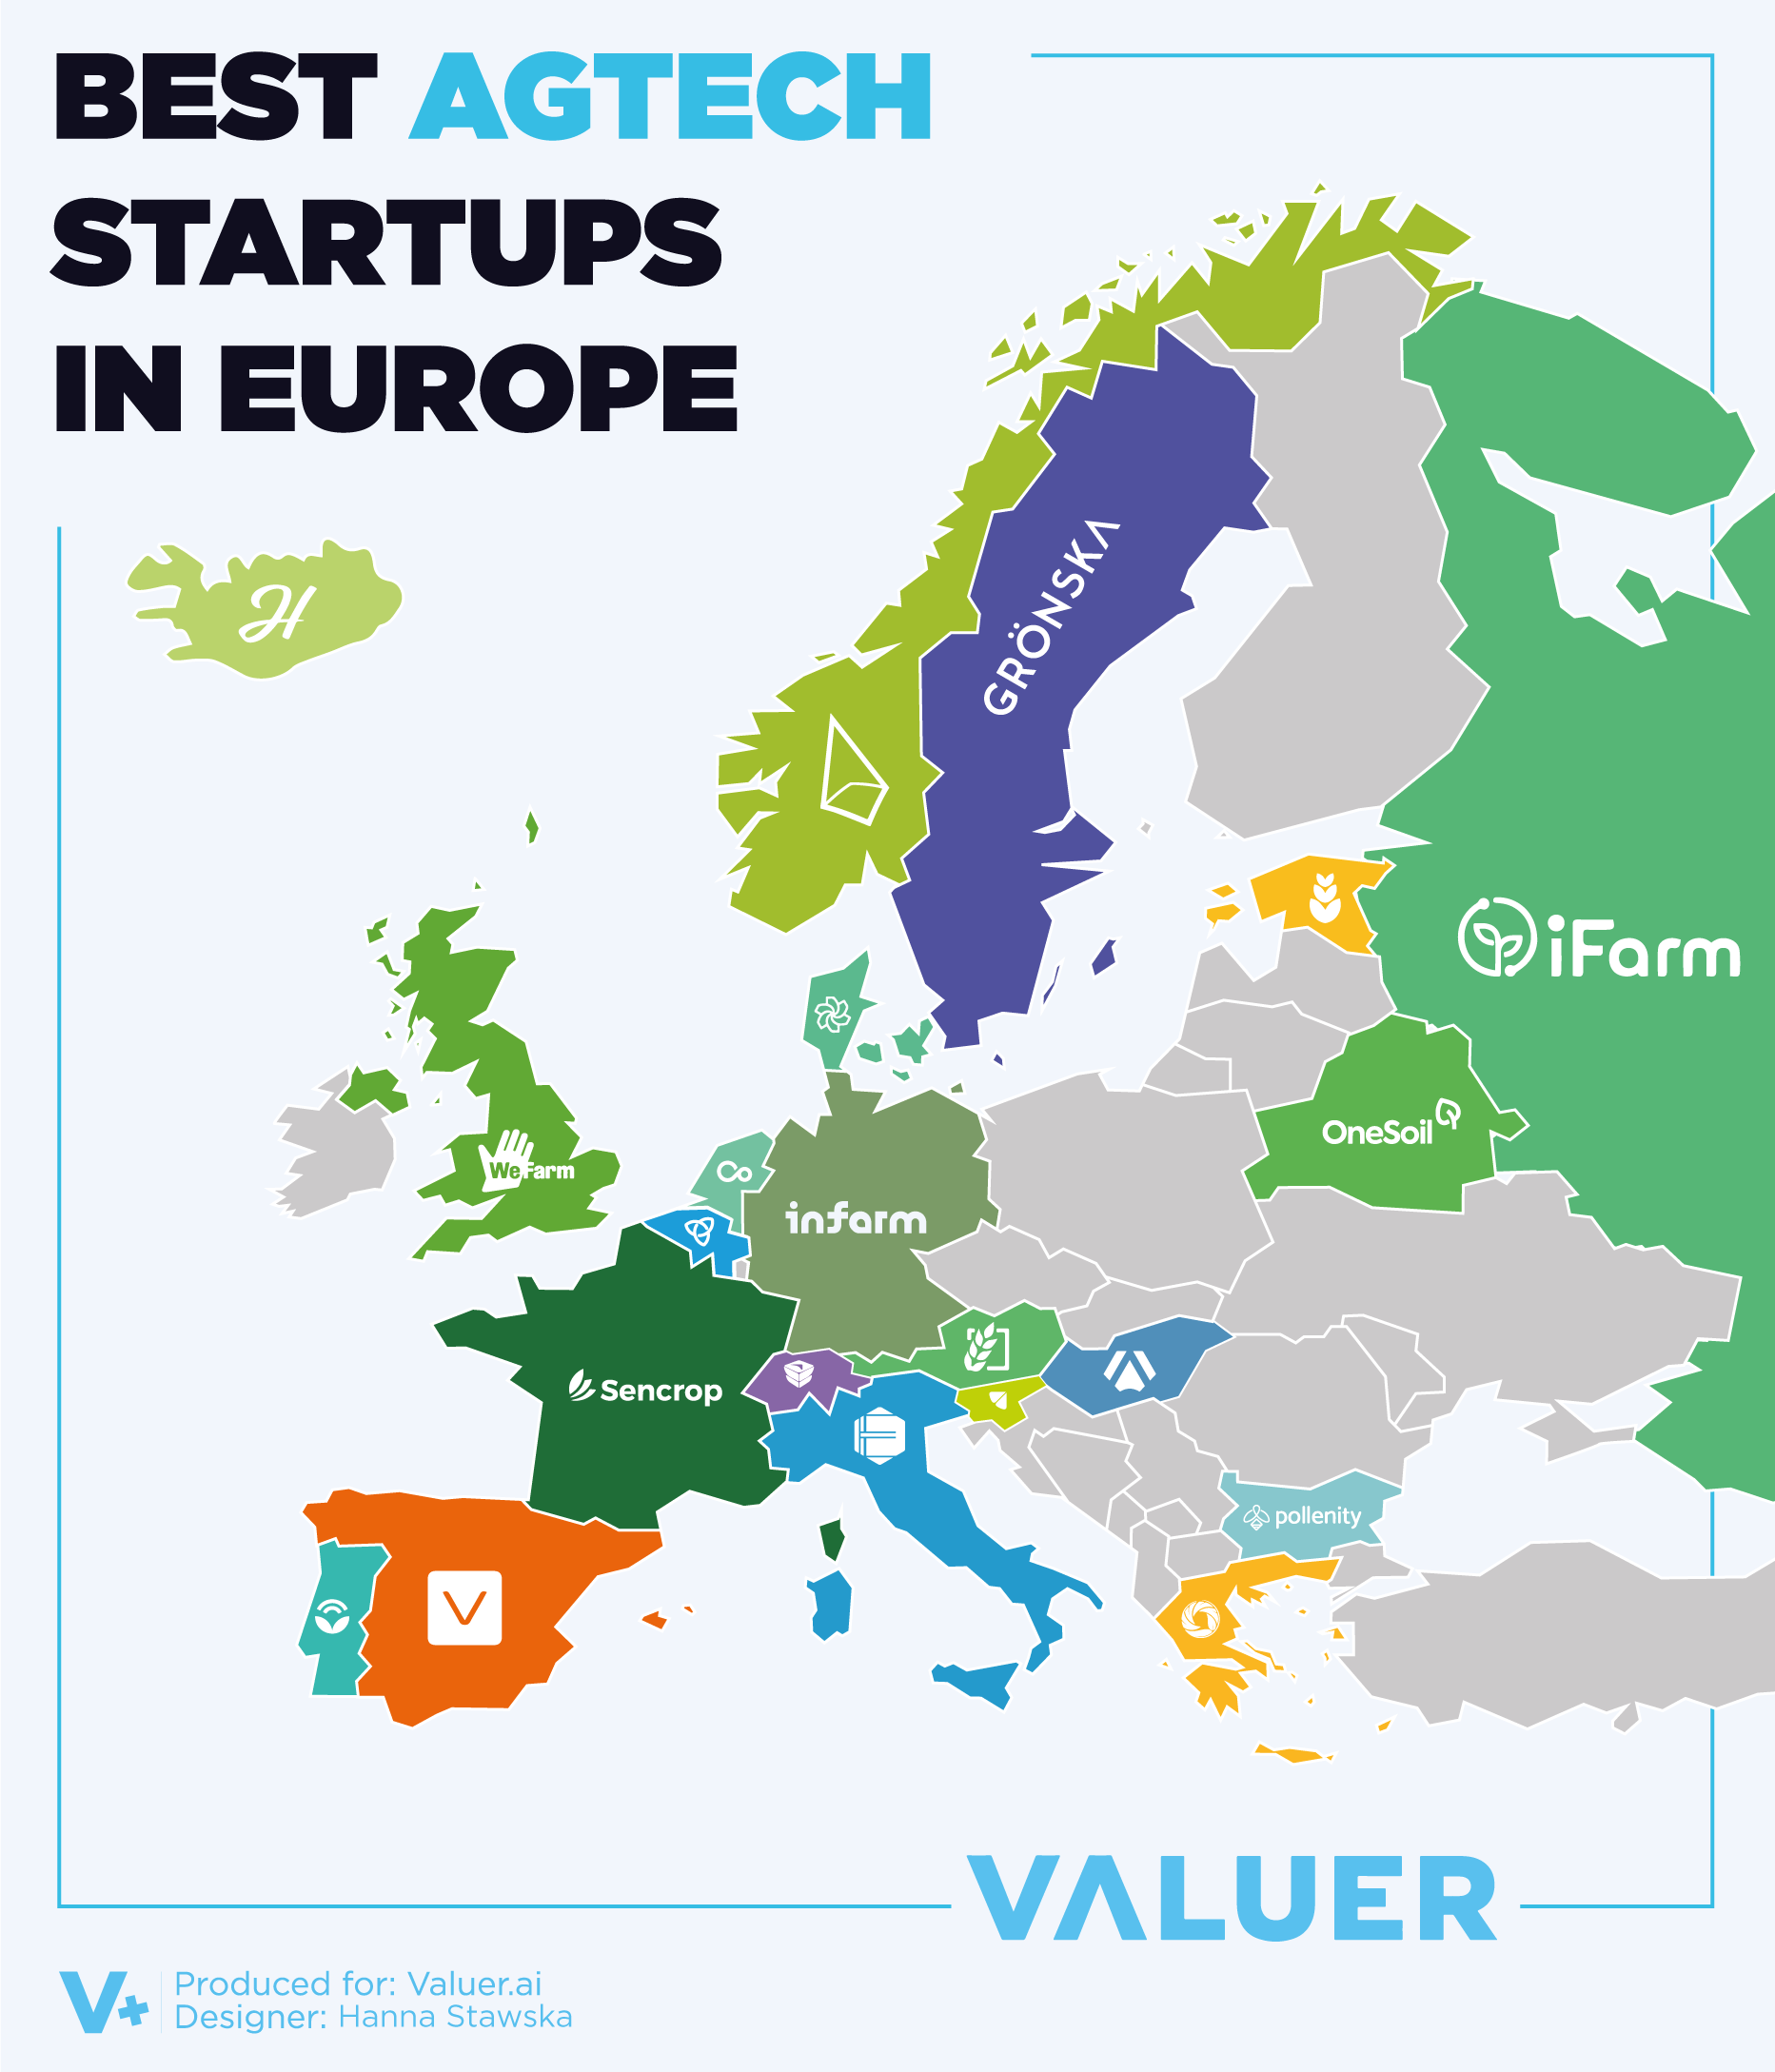 A map of Europe showing the best agriculture technology startups in Europe